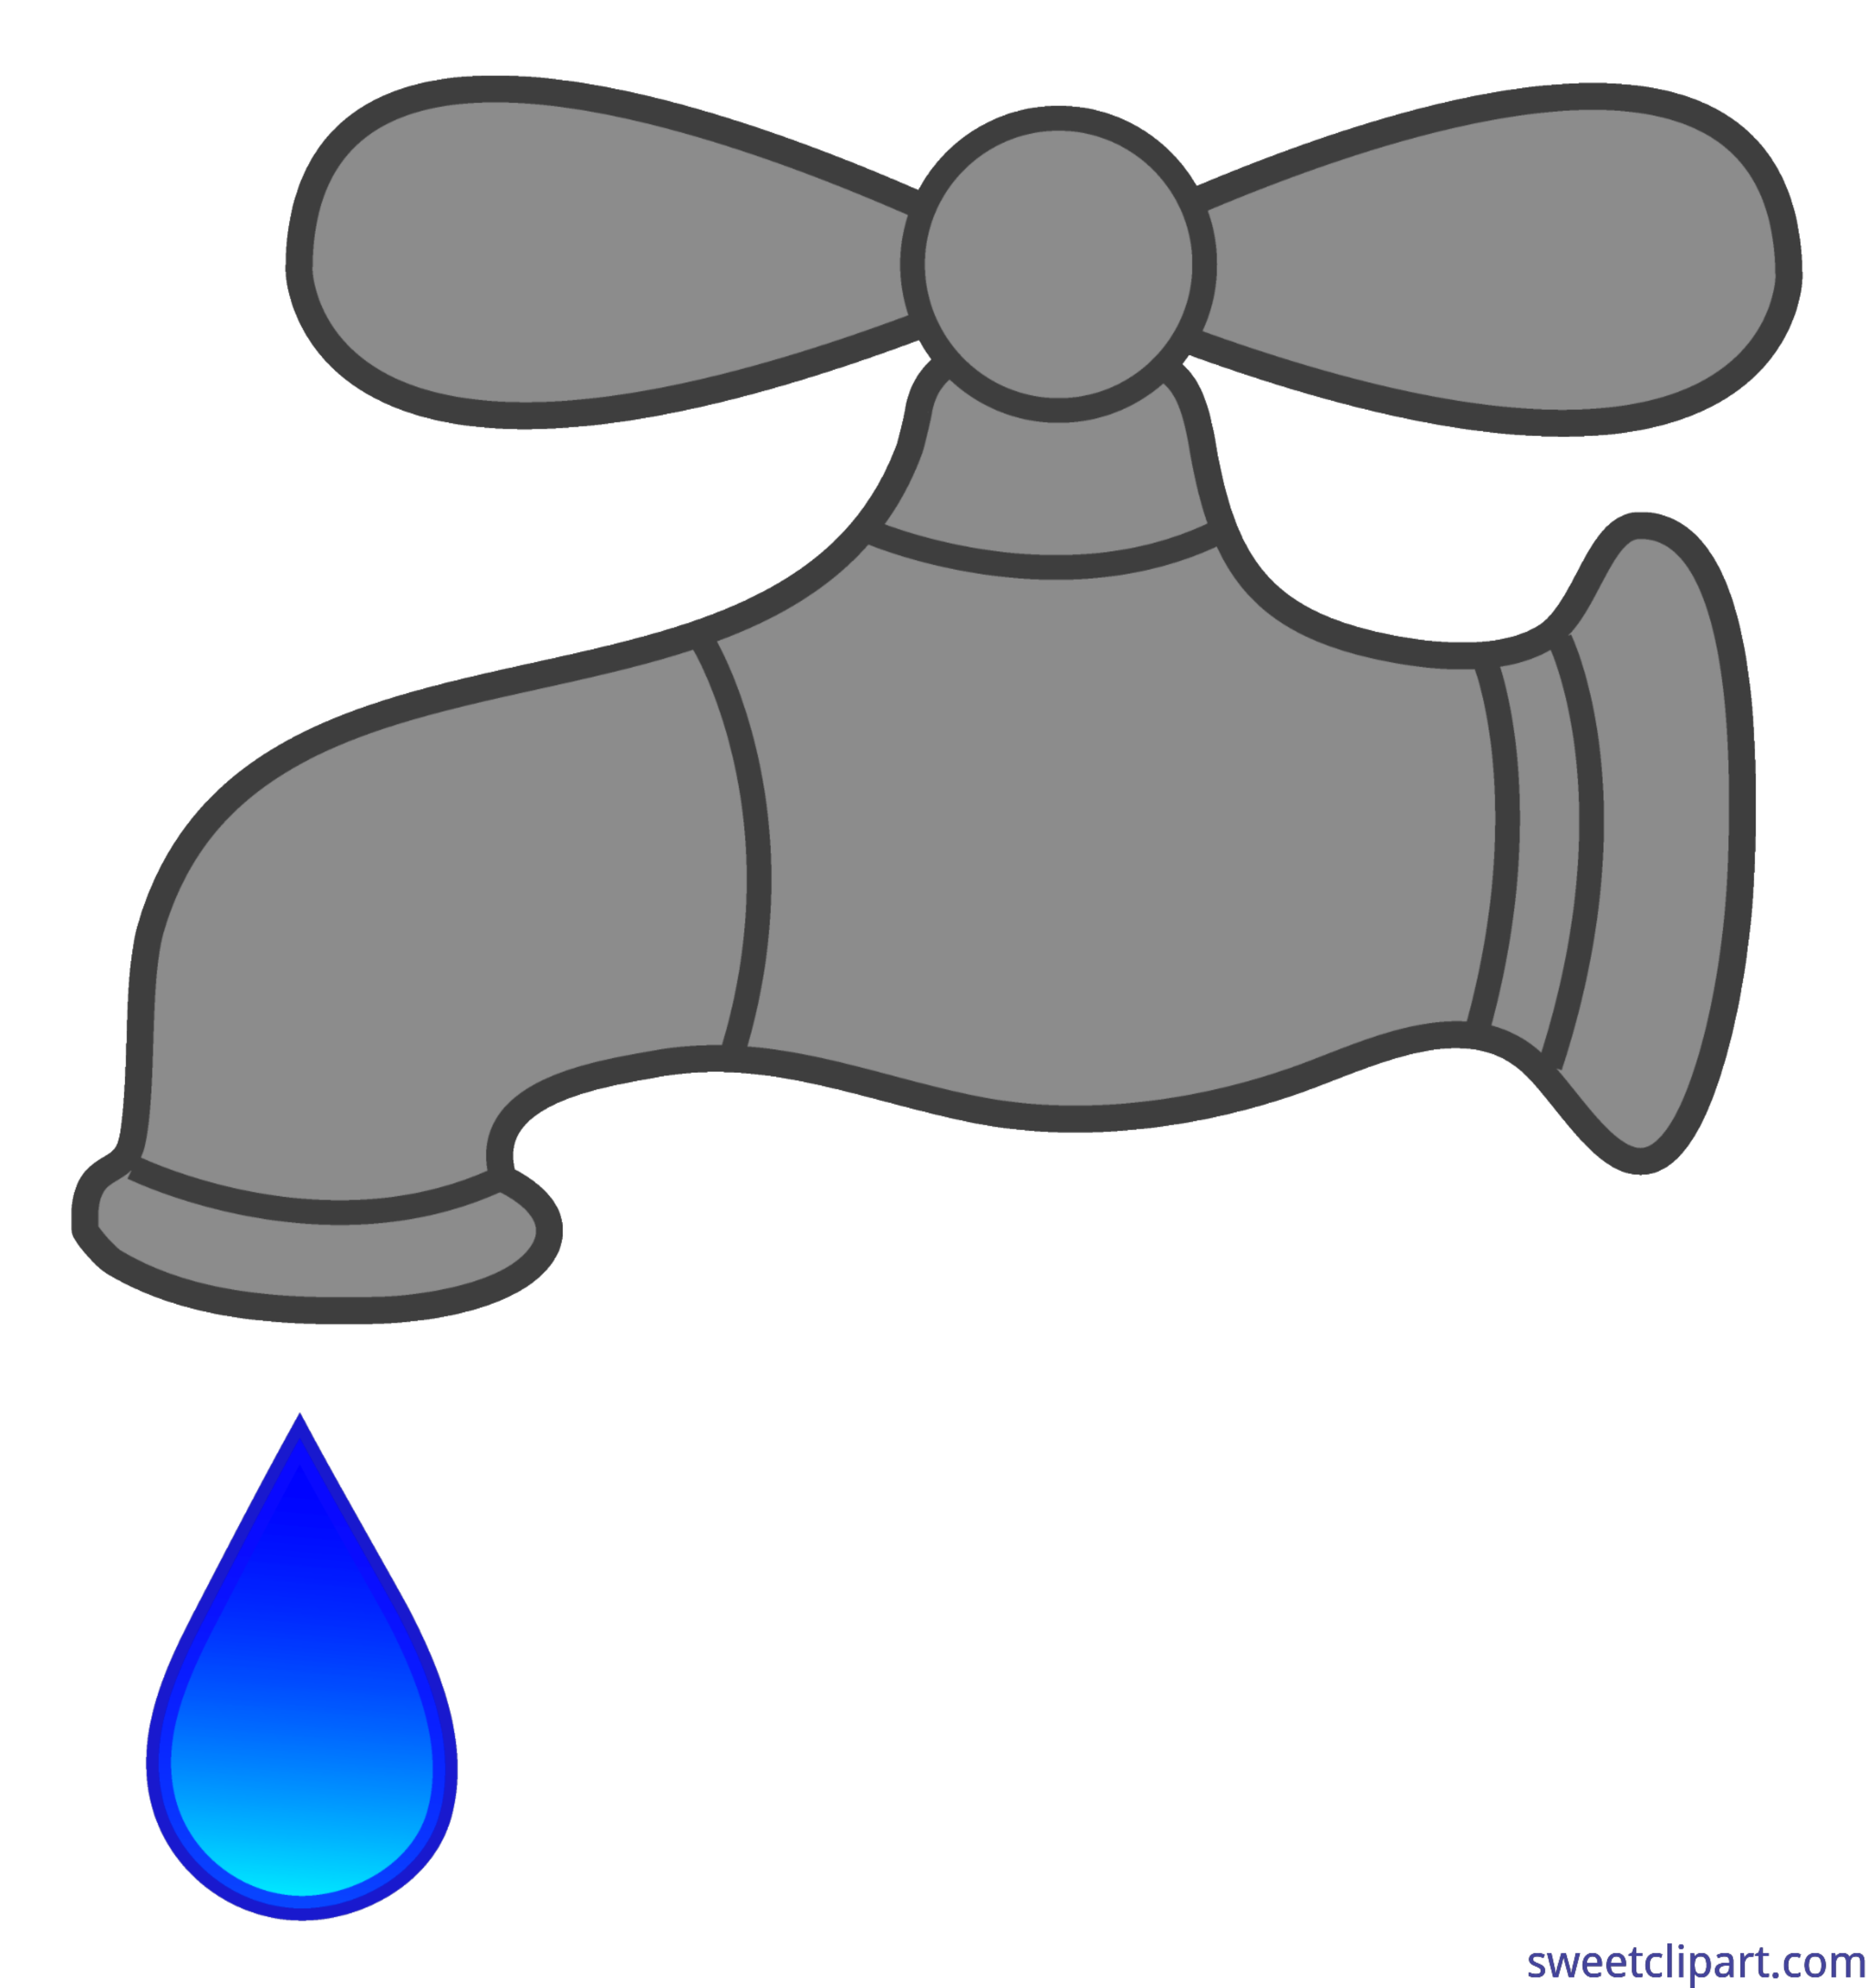 Faucet clipart, Faucet Transparent FREE for download on.